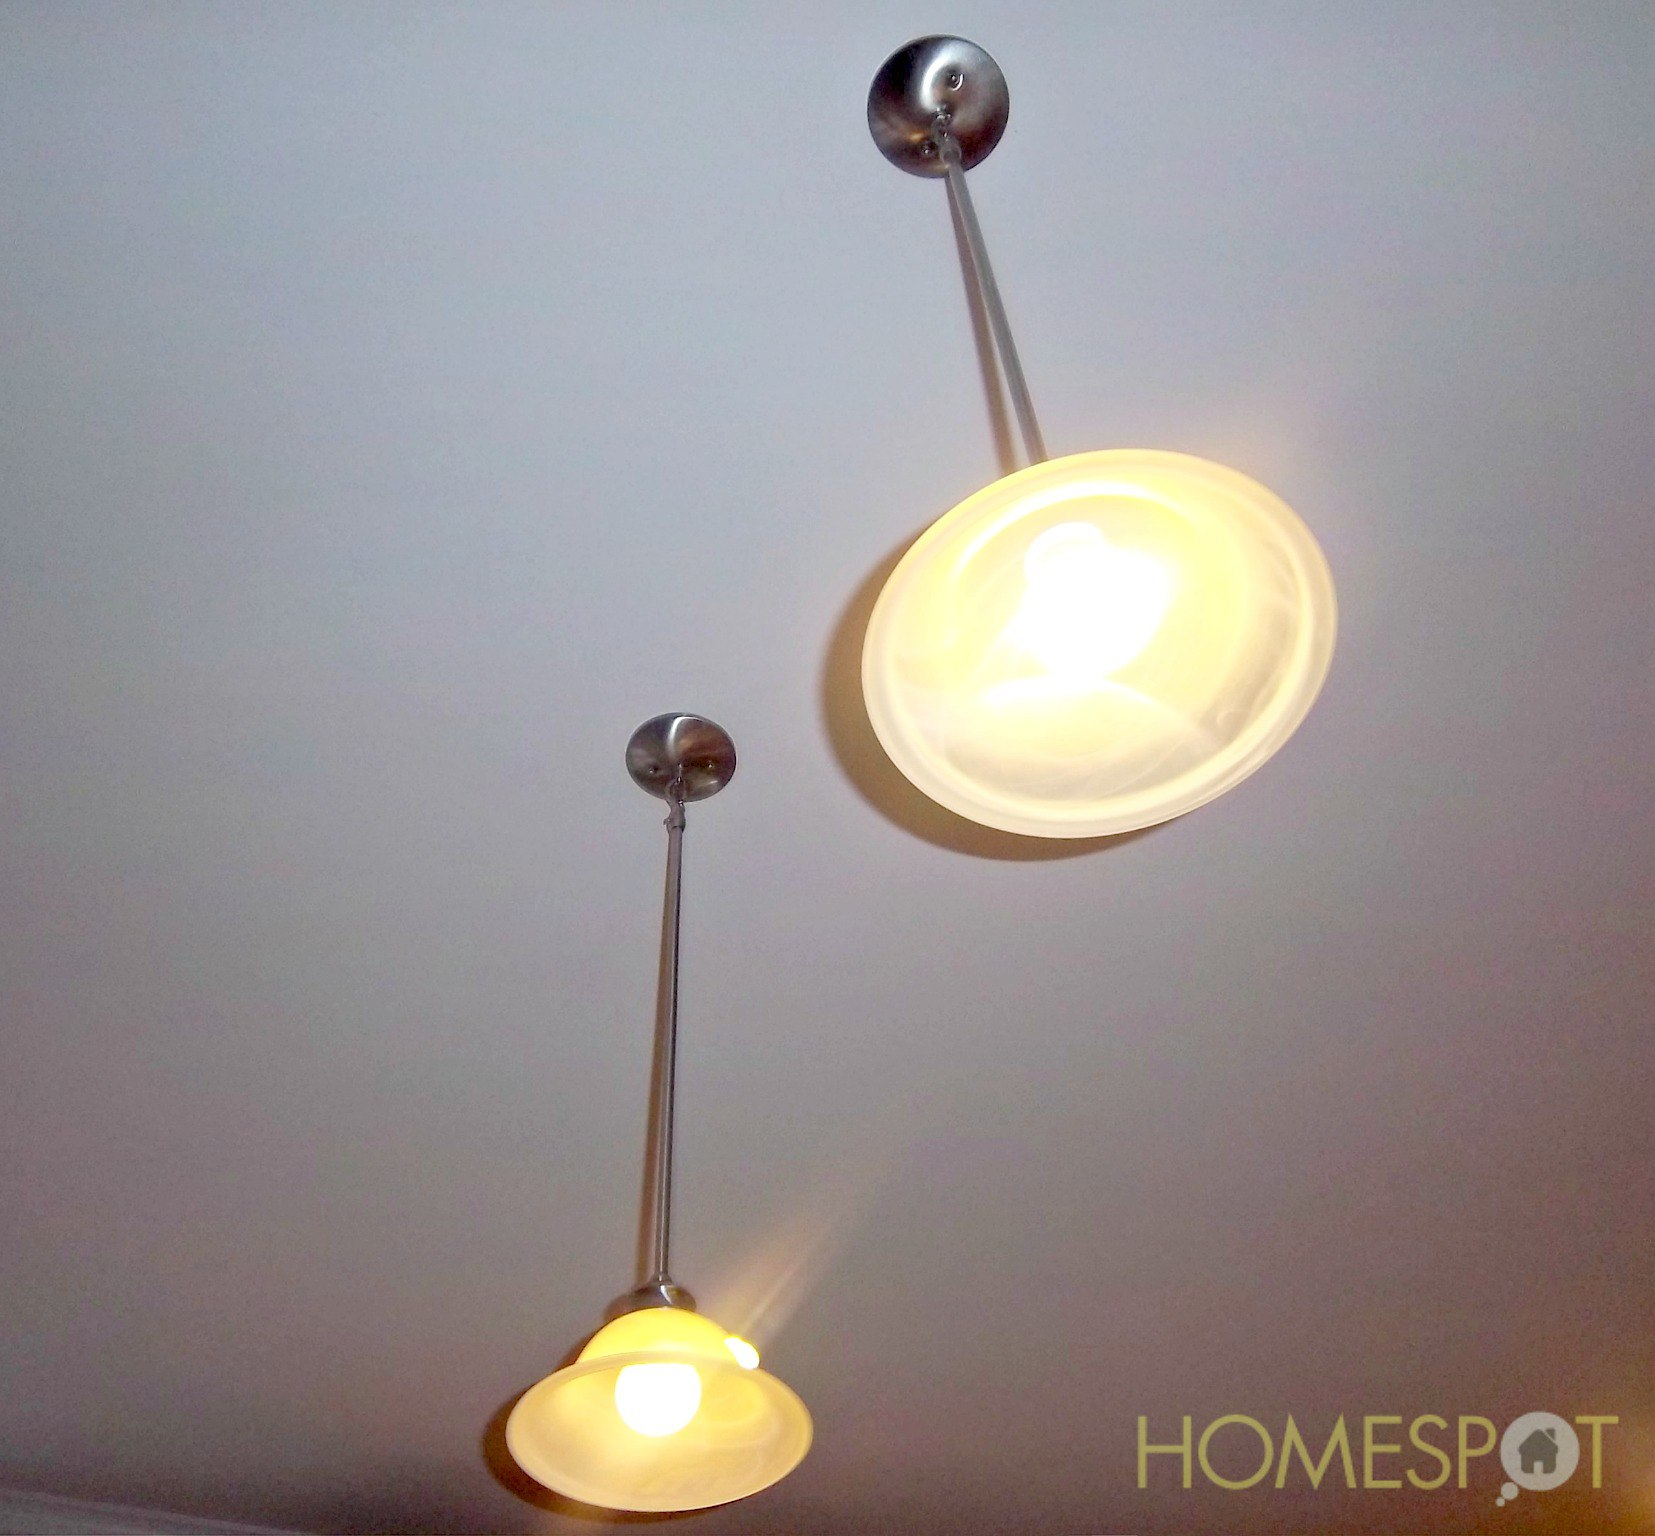 Brighten Up A Room With New Lighting